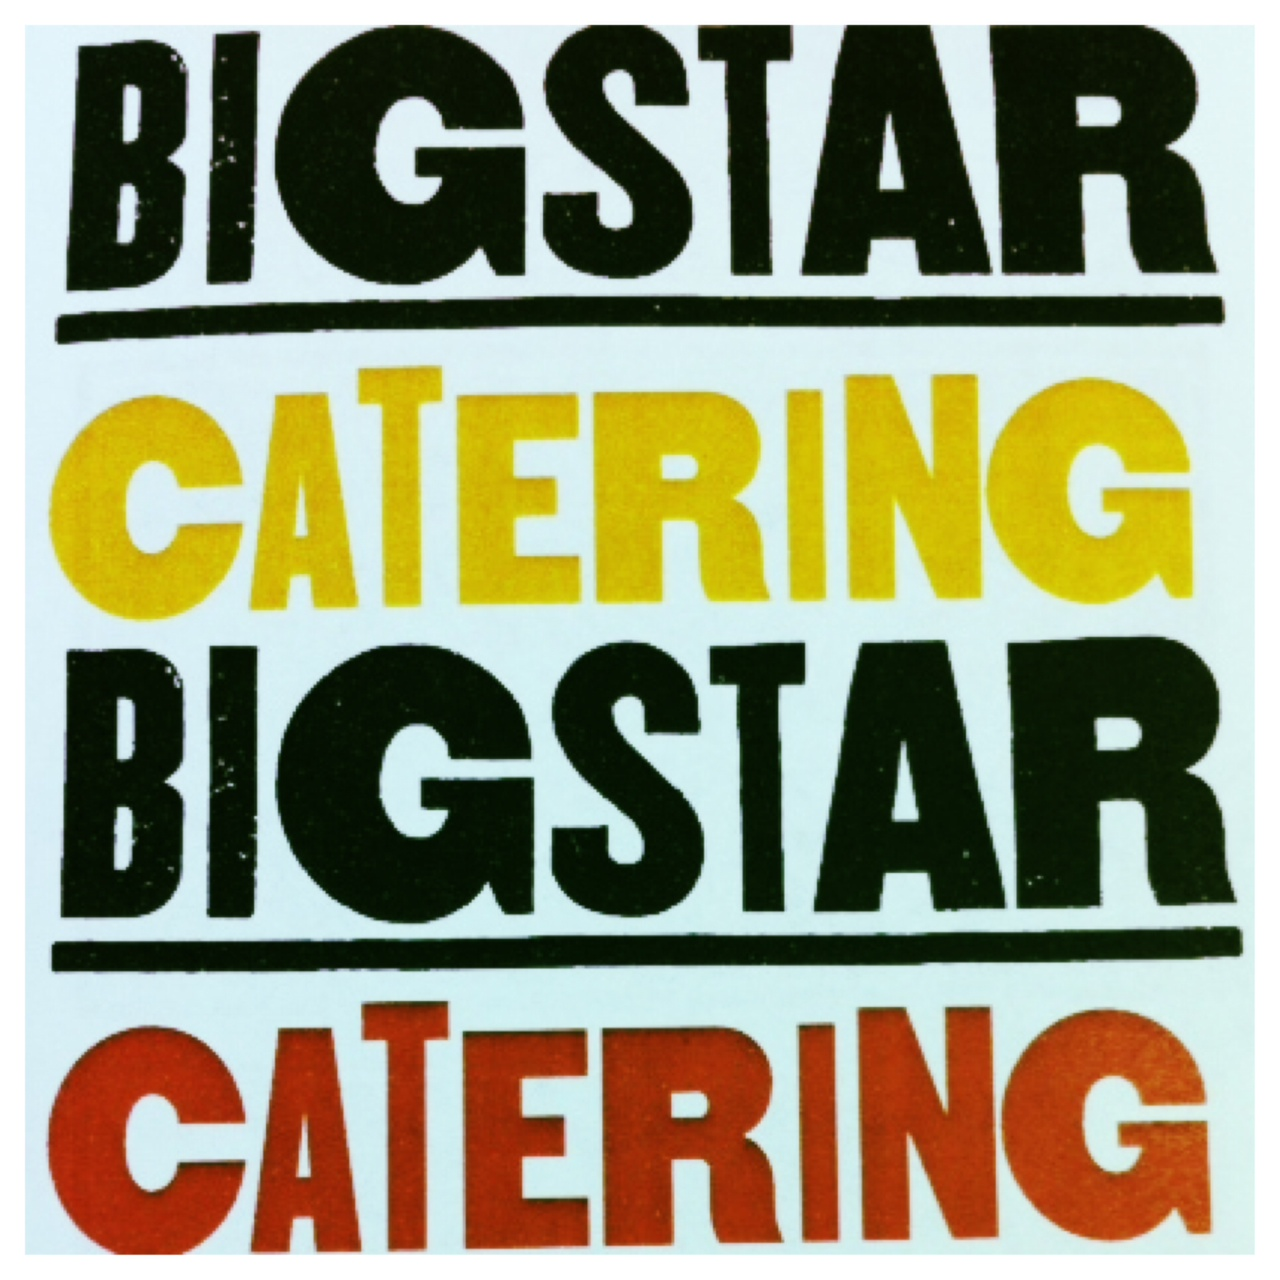 Big Star Catering - Big Star Catering